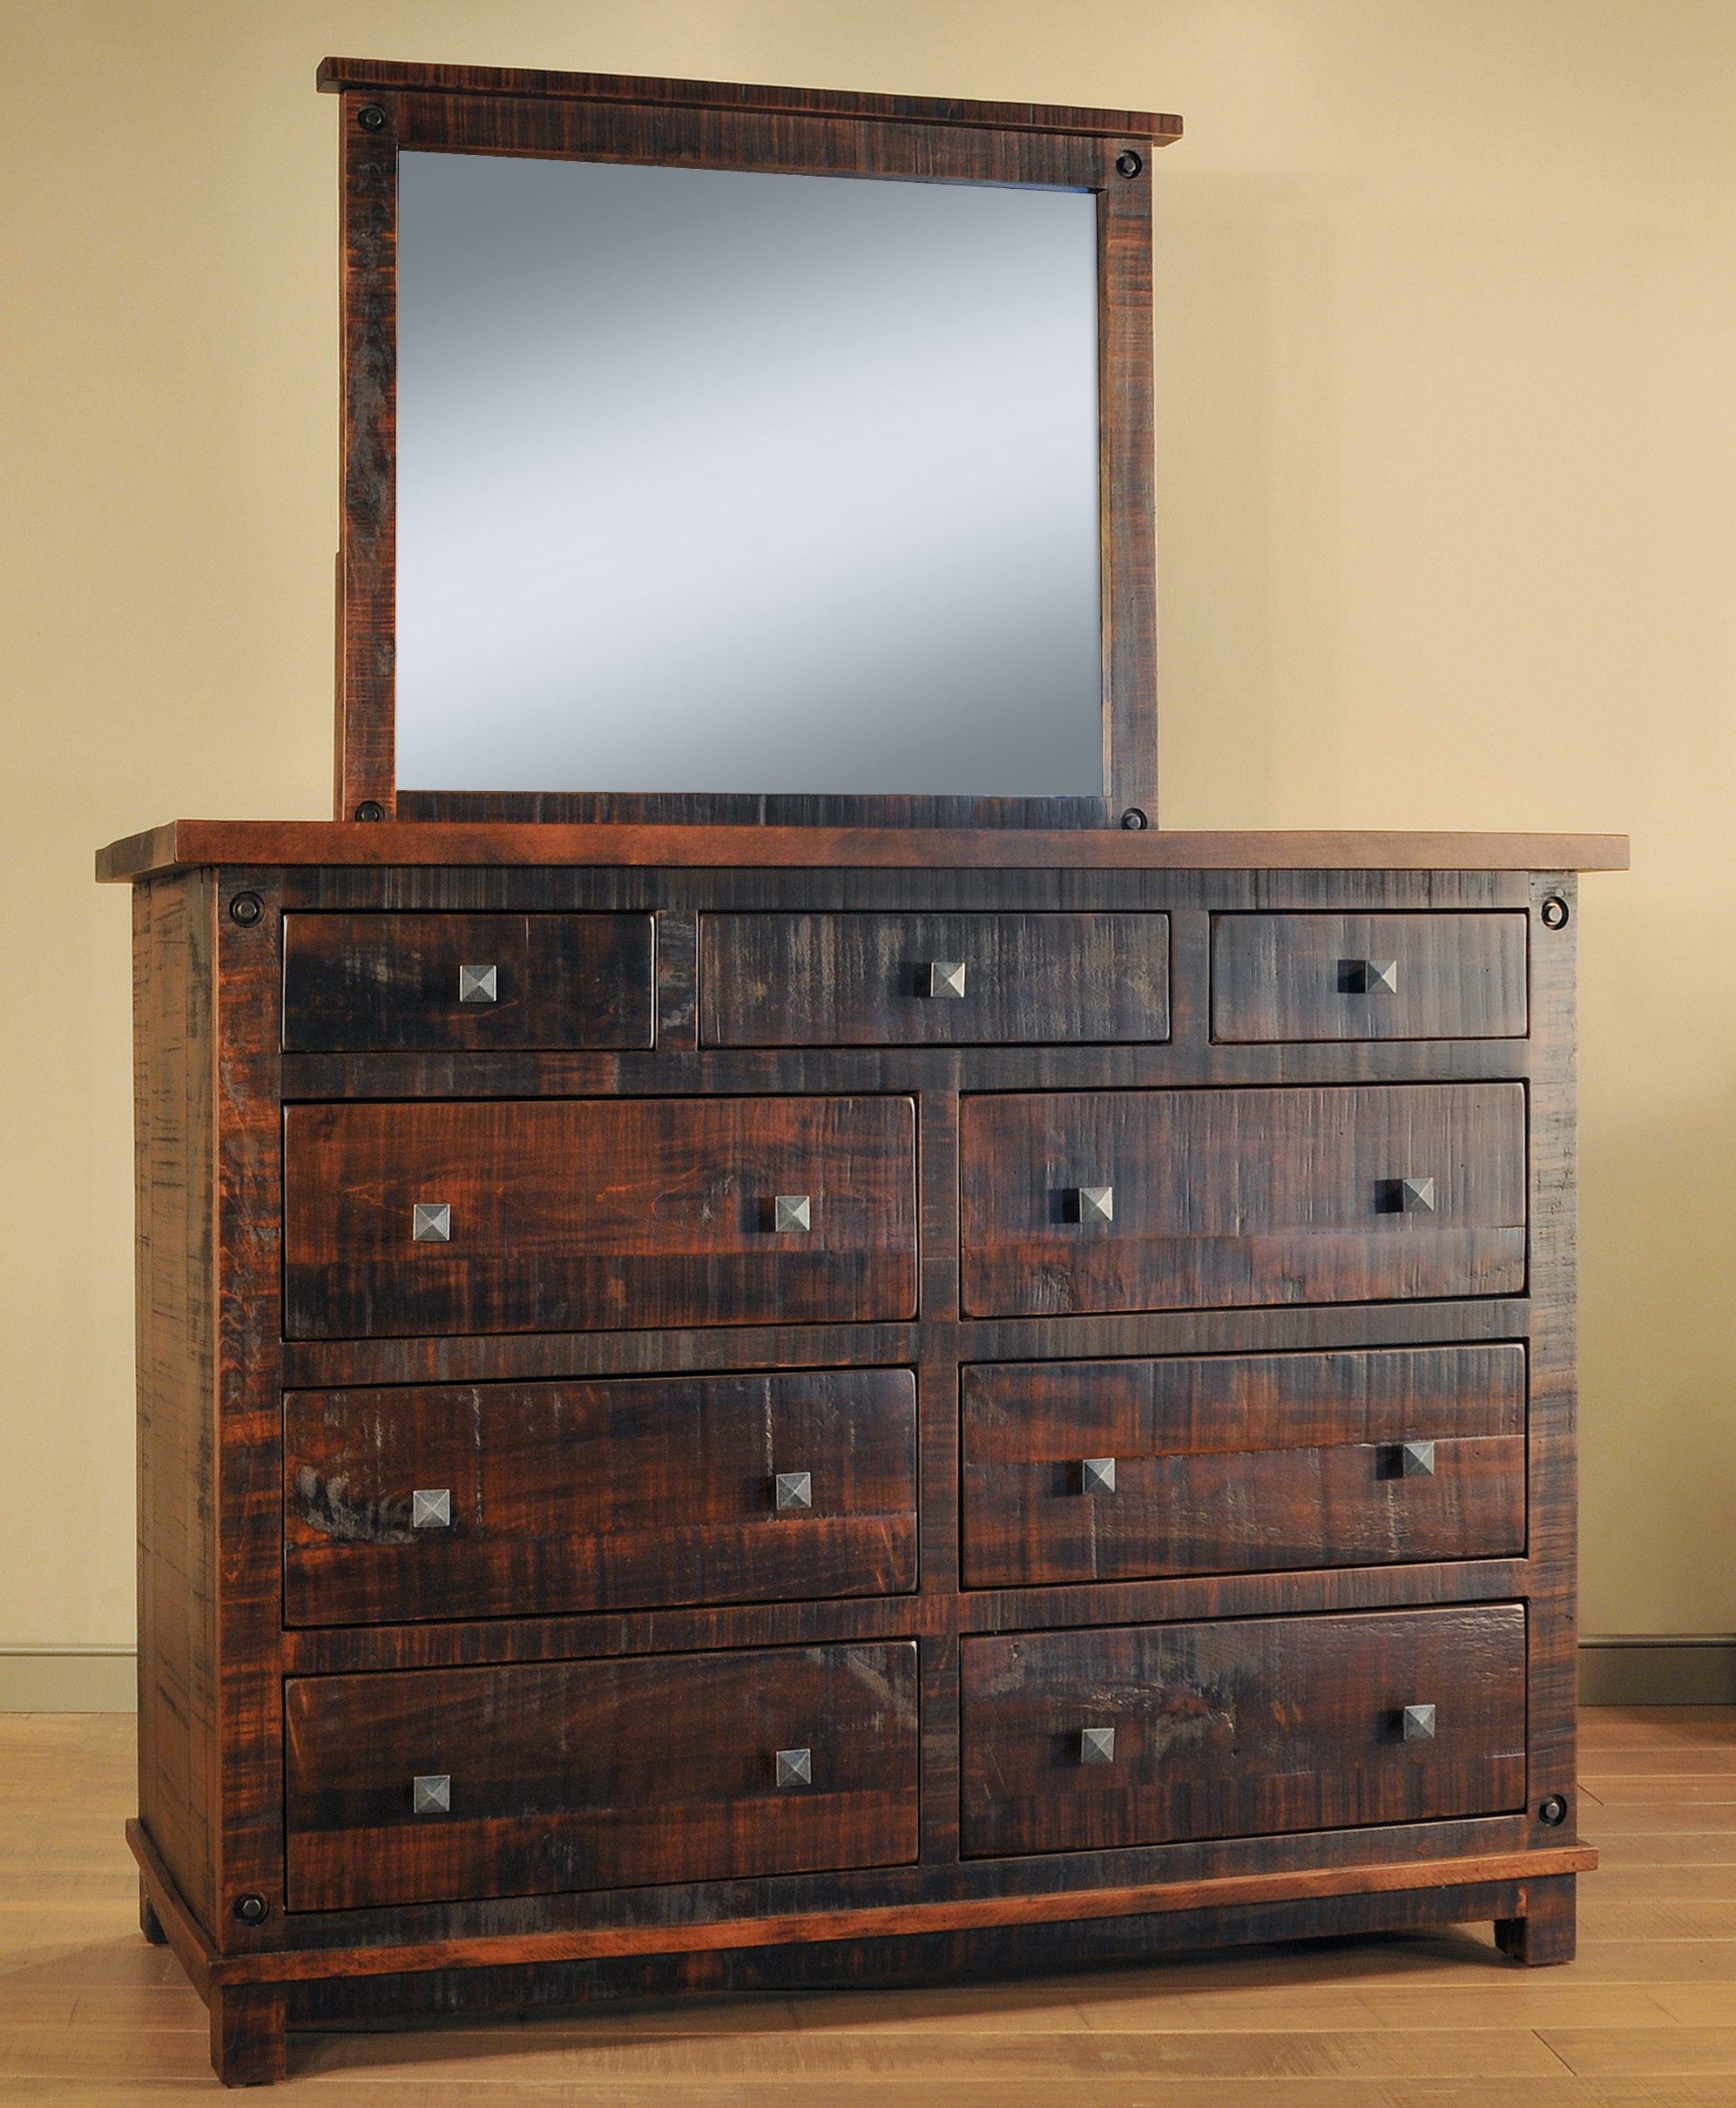 Dressers made in amish country